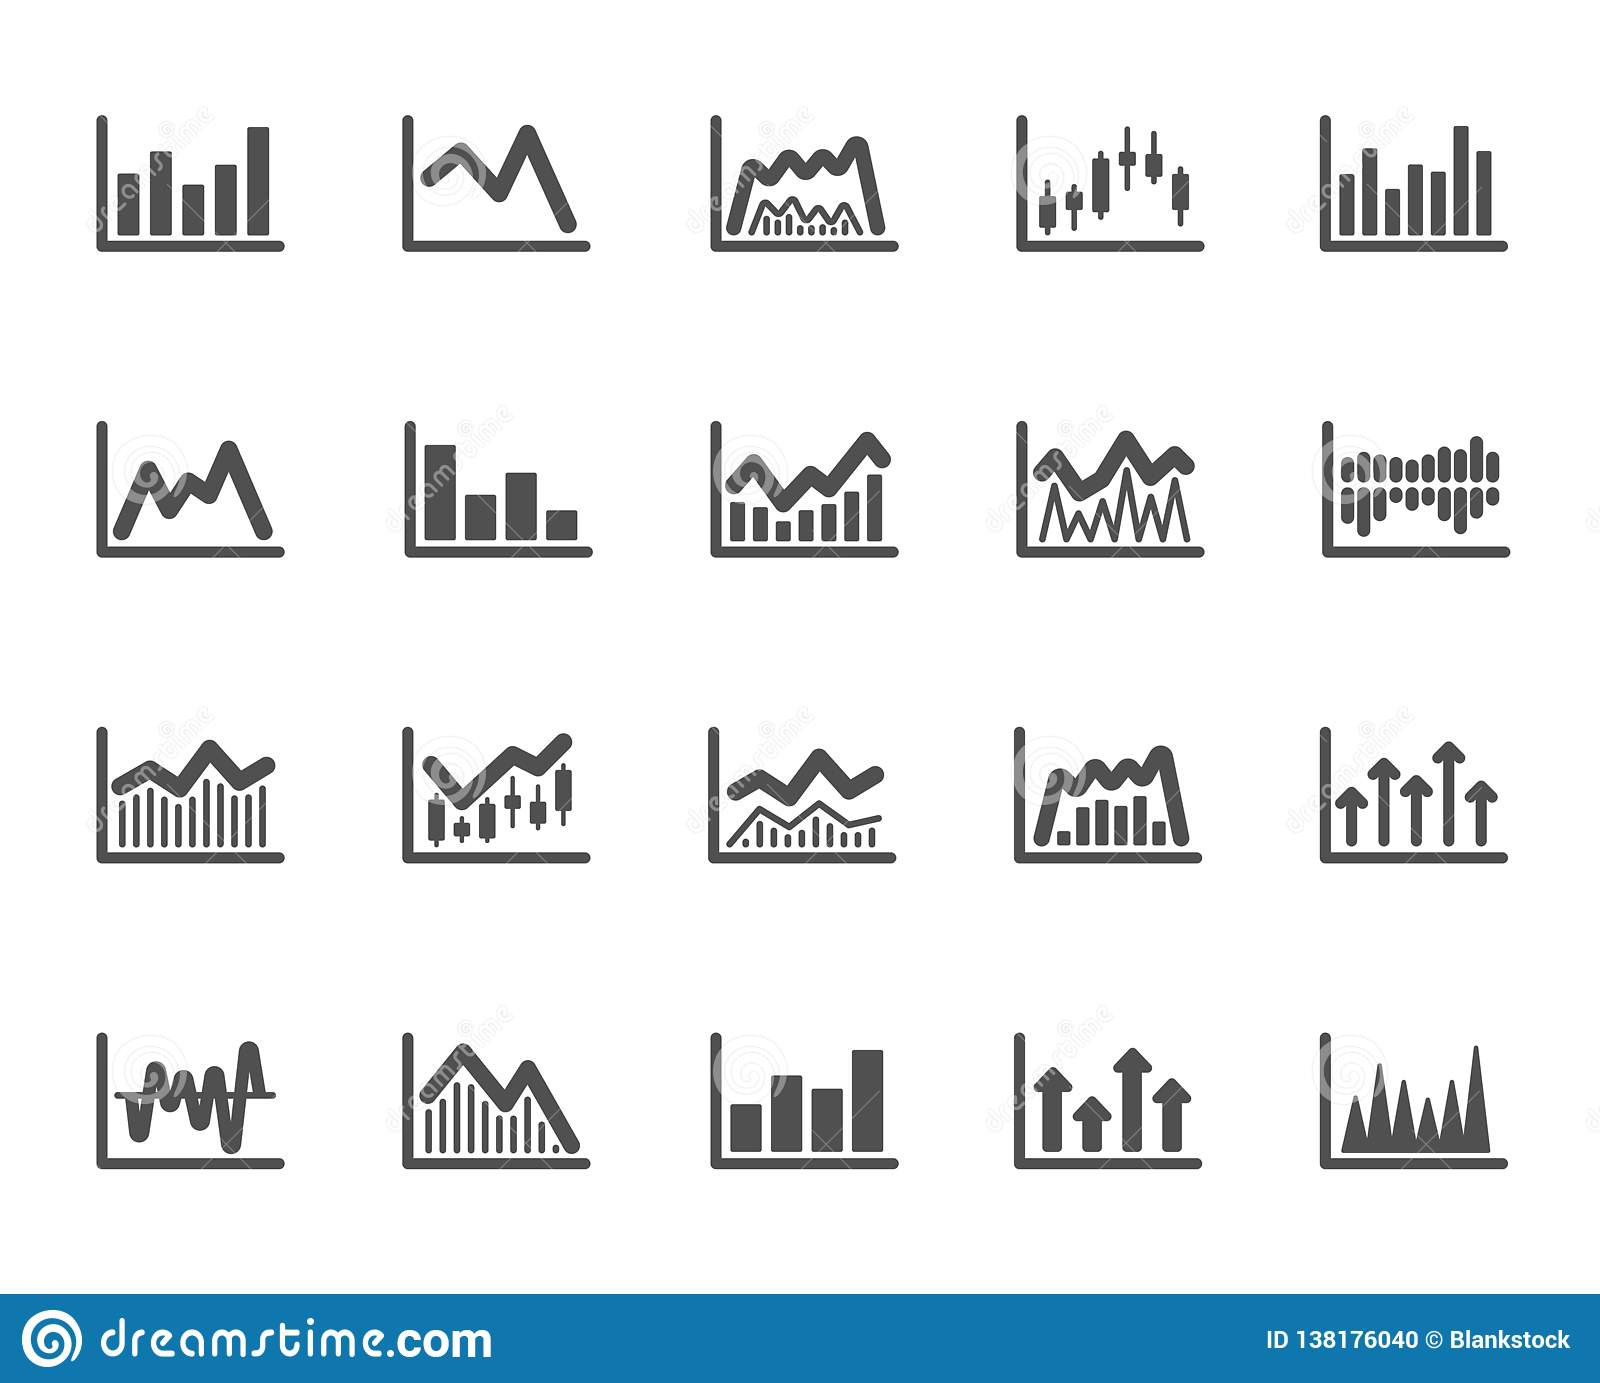 set of candle stick graph, report diagram and infochart icons  growth,  trade and investment chart  stock exchange, candlestick and financial diagram  graph